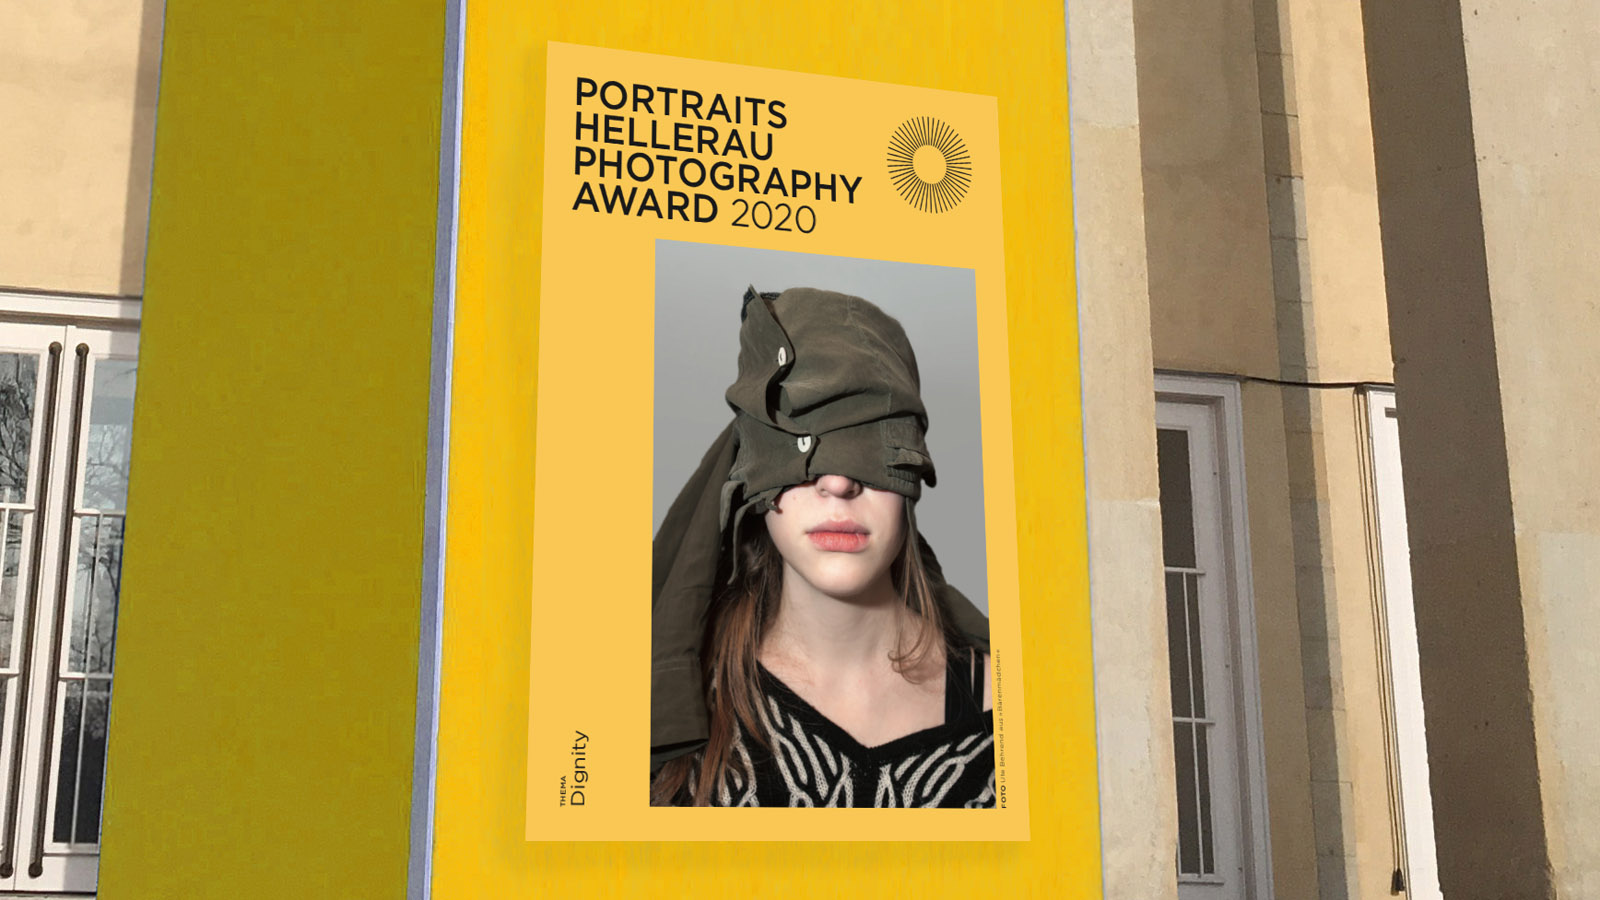 »PORTRAITS – Hellerau Photography Award 2020«